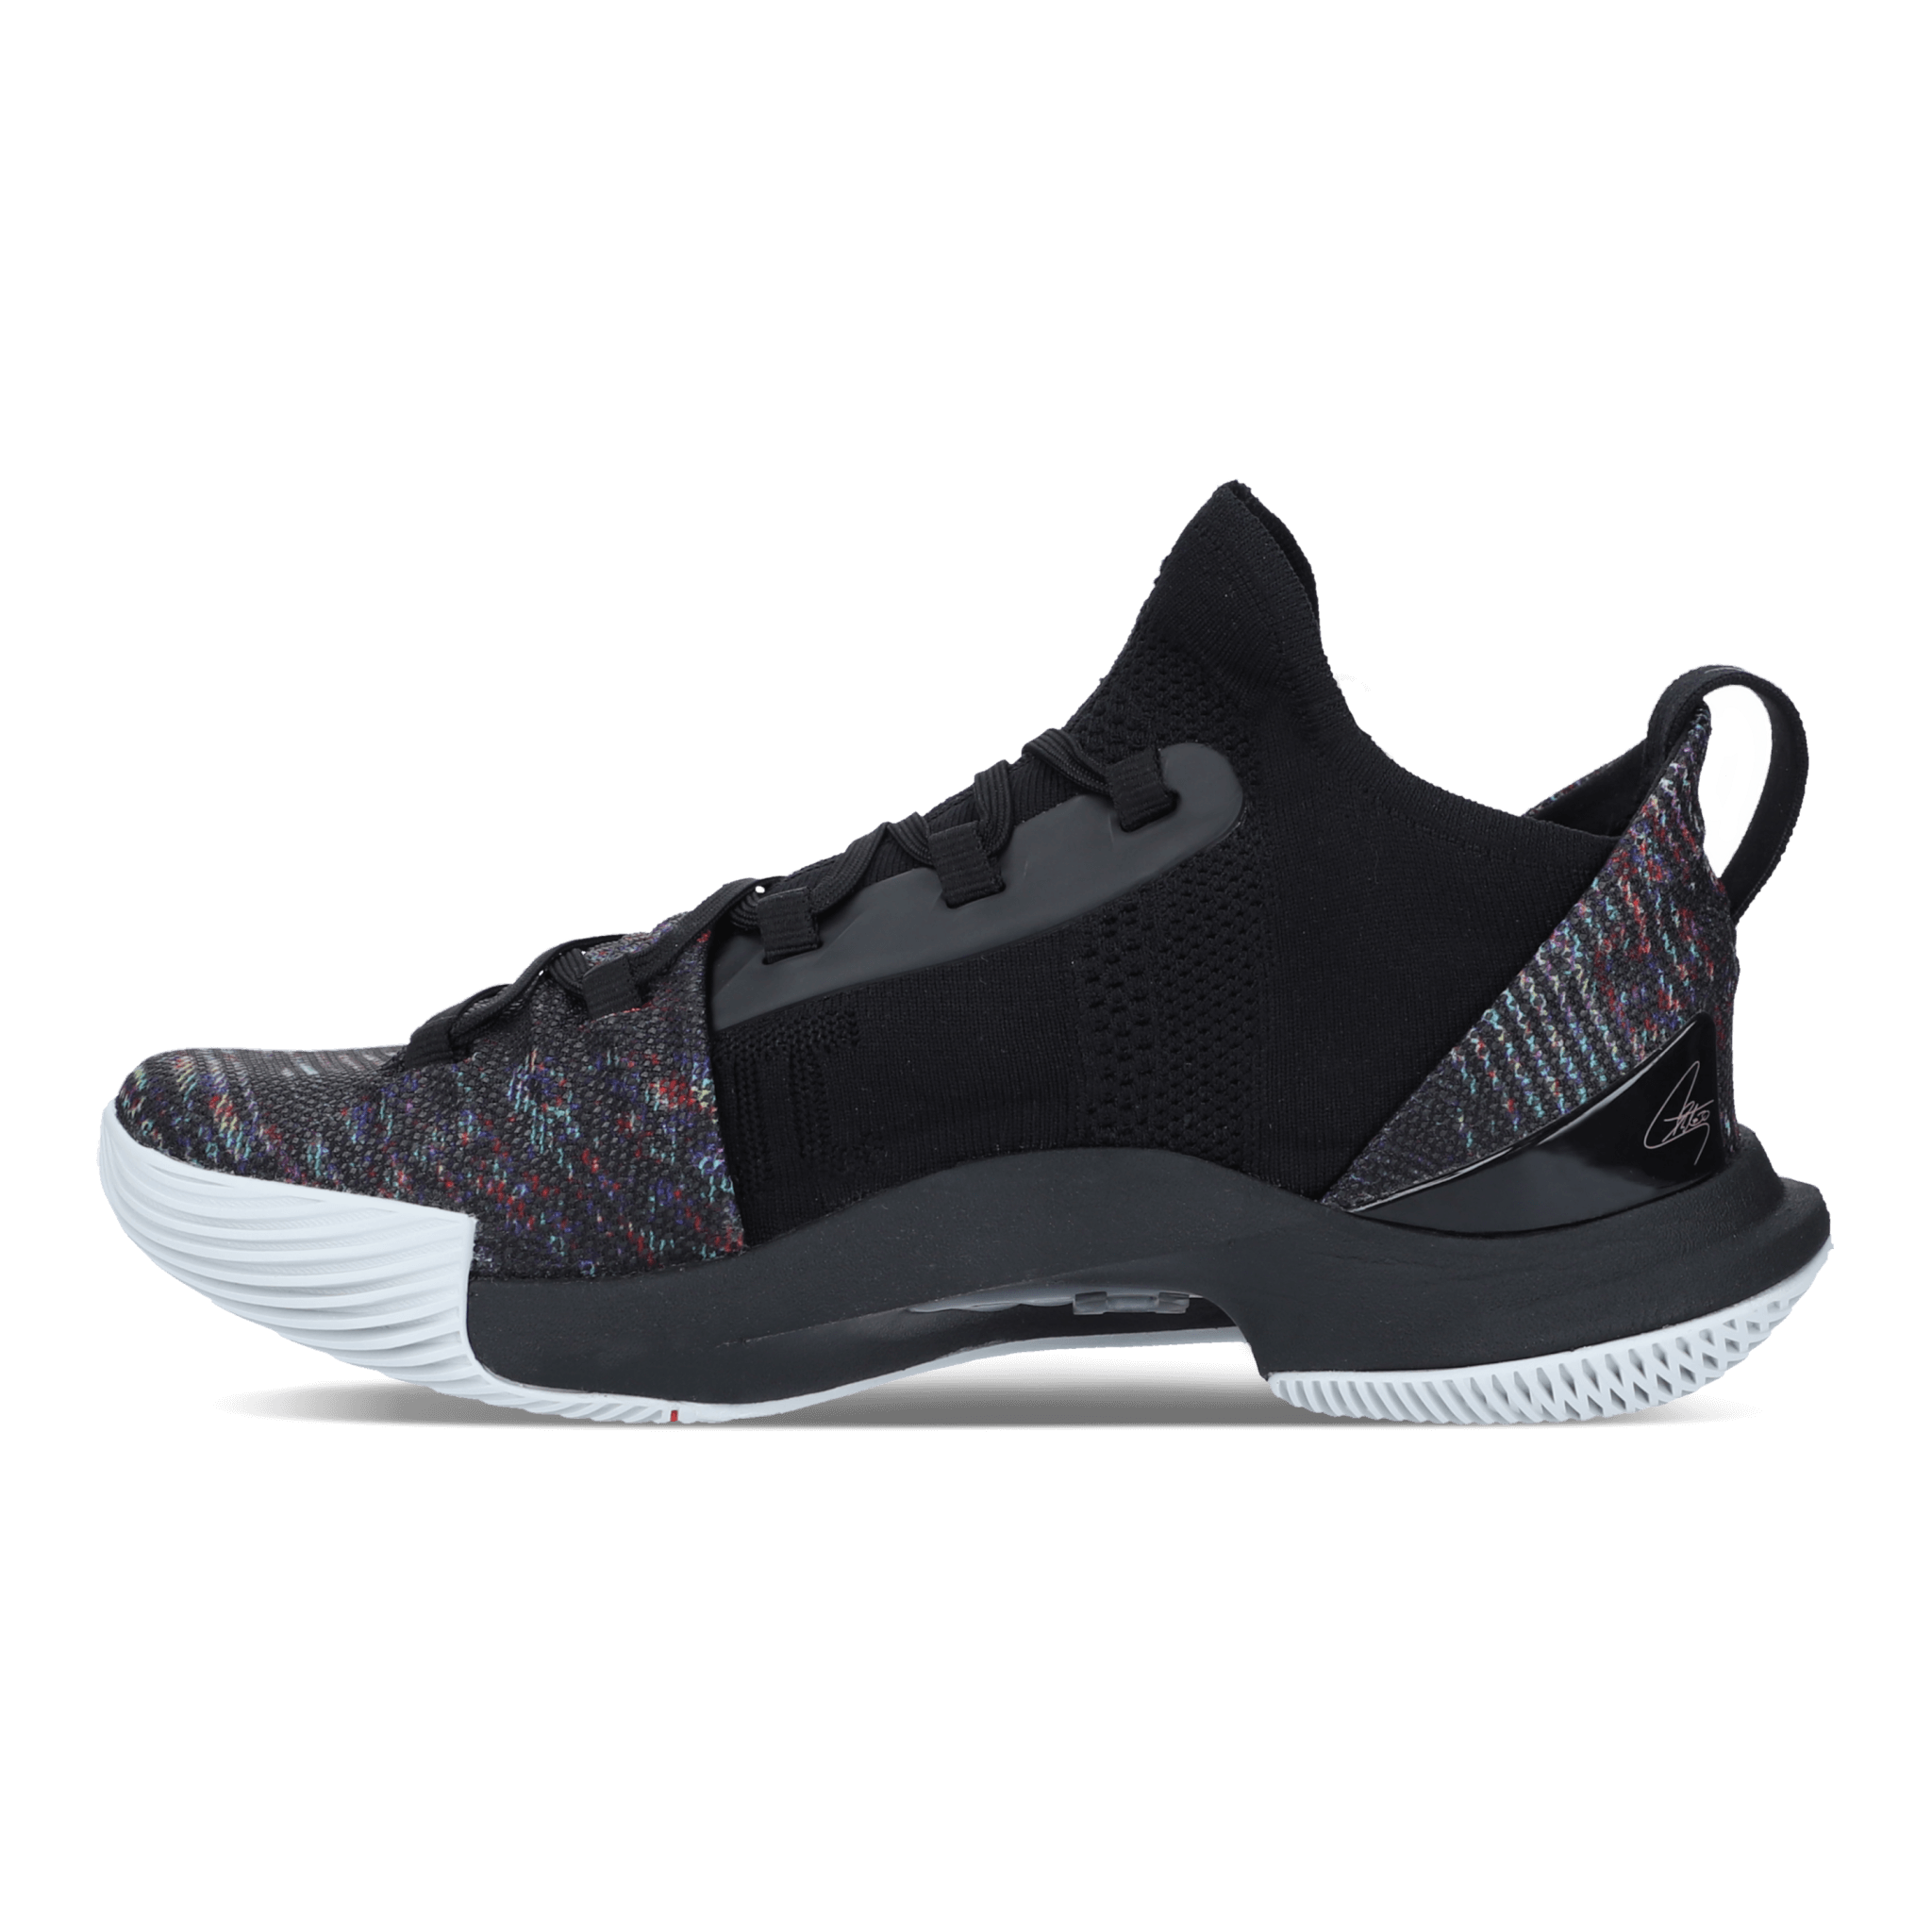 b85391f52edf Under Armour Curry 5 Performance Review